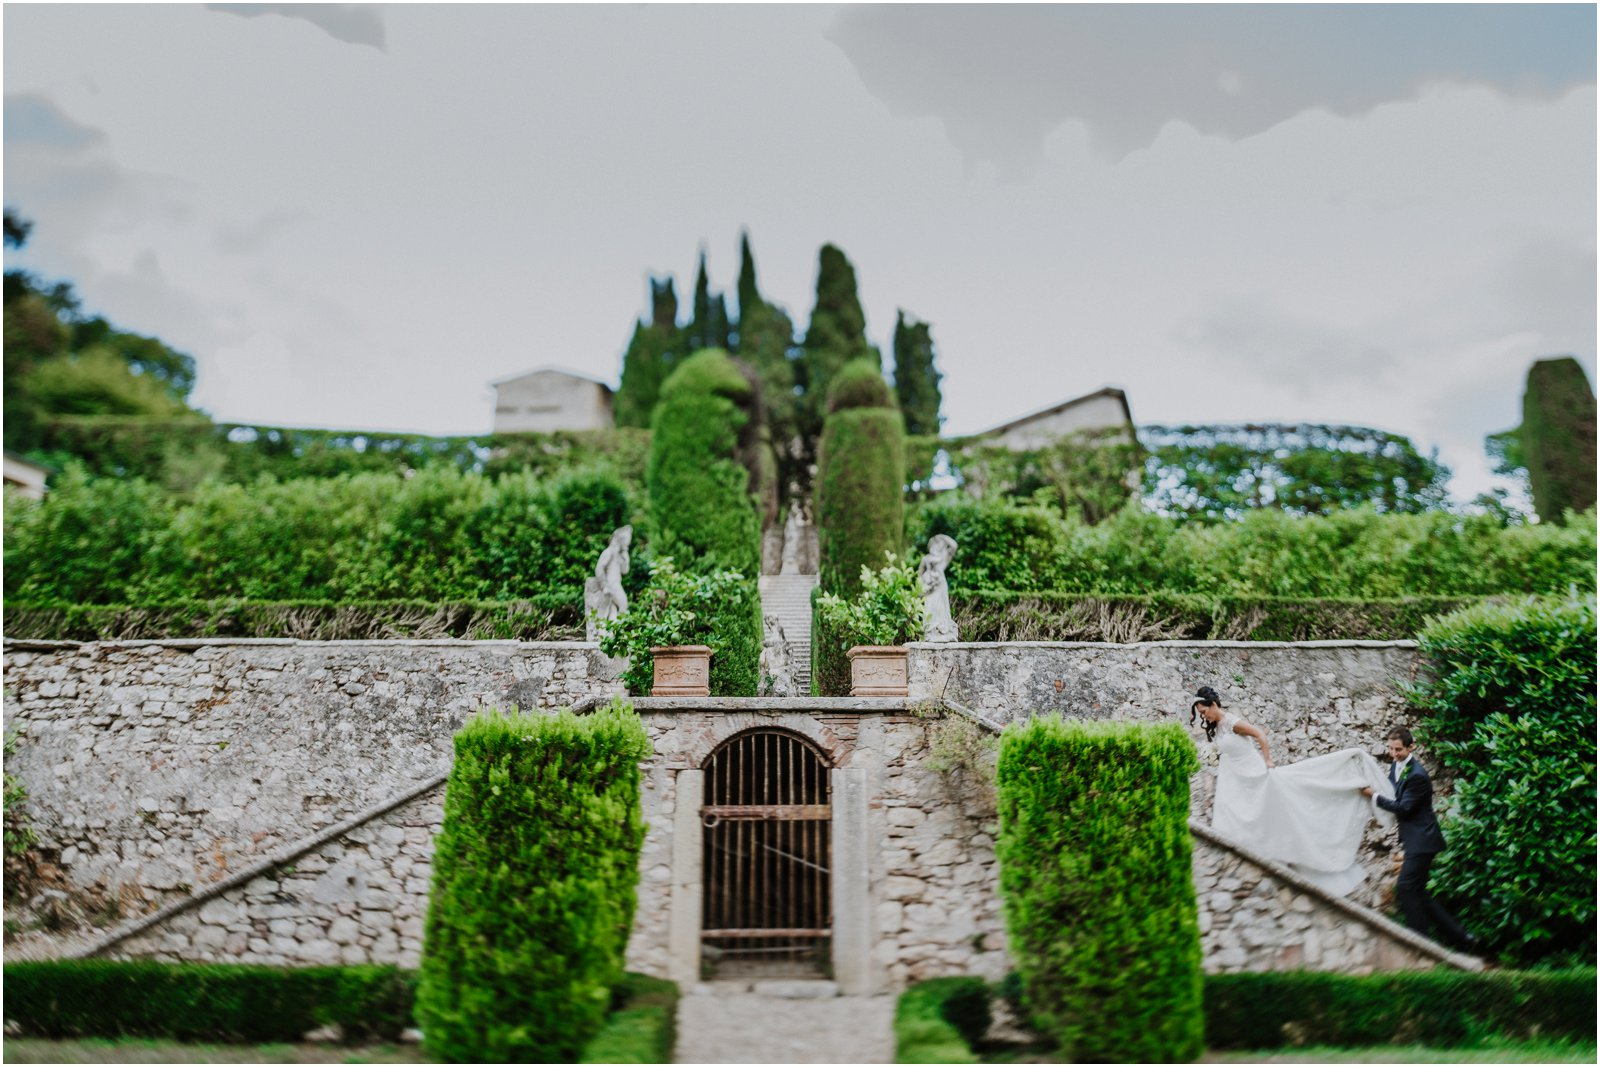 veronasposi foto e video matrimonio verona_0599